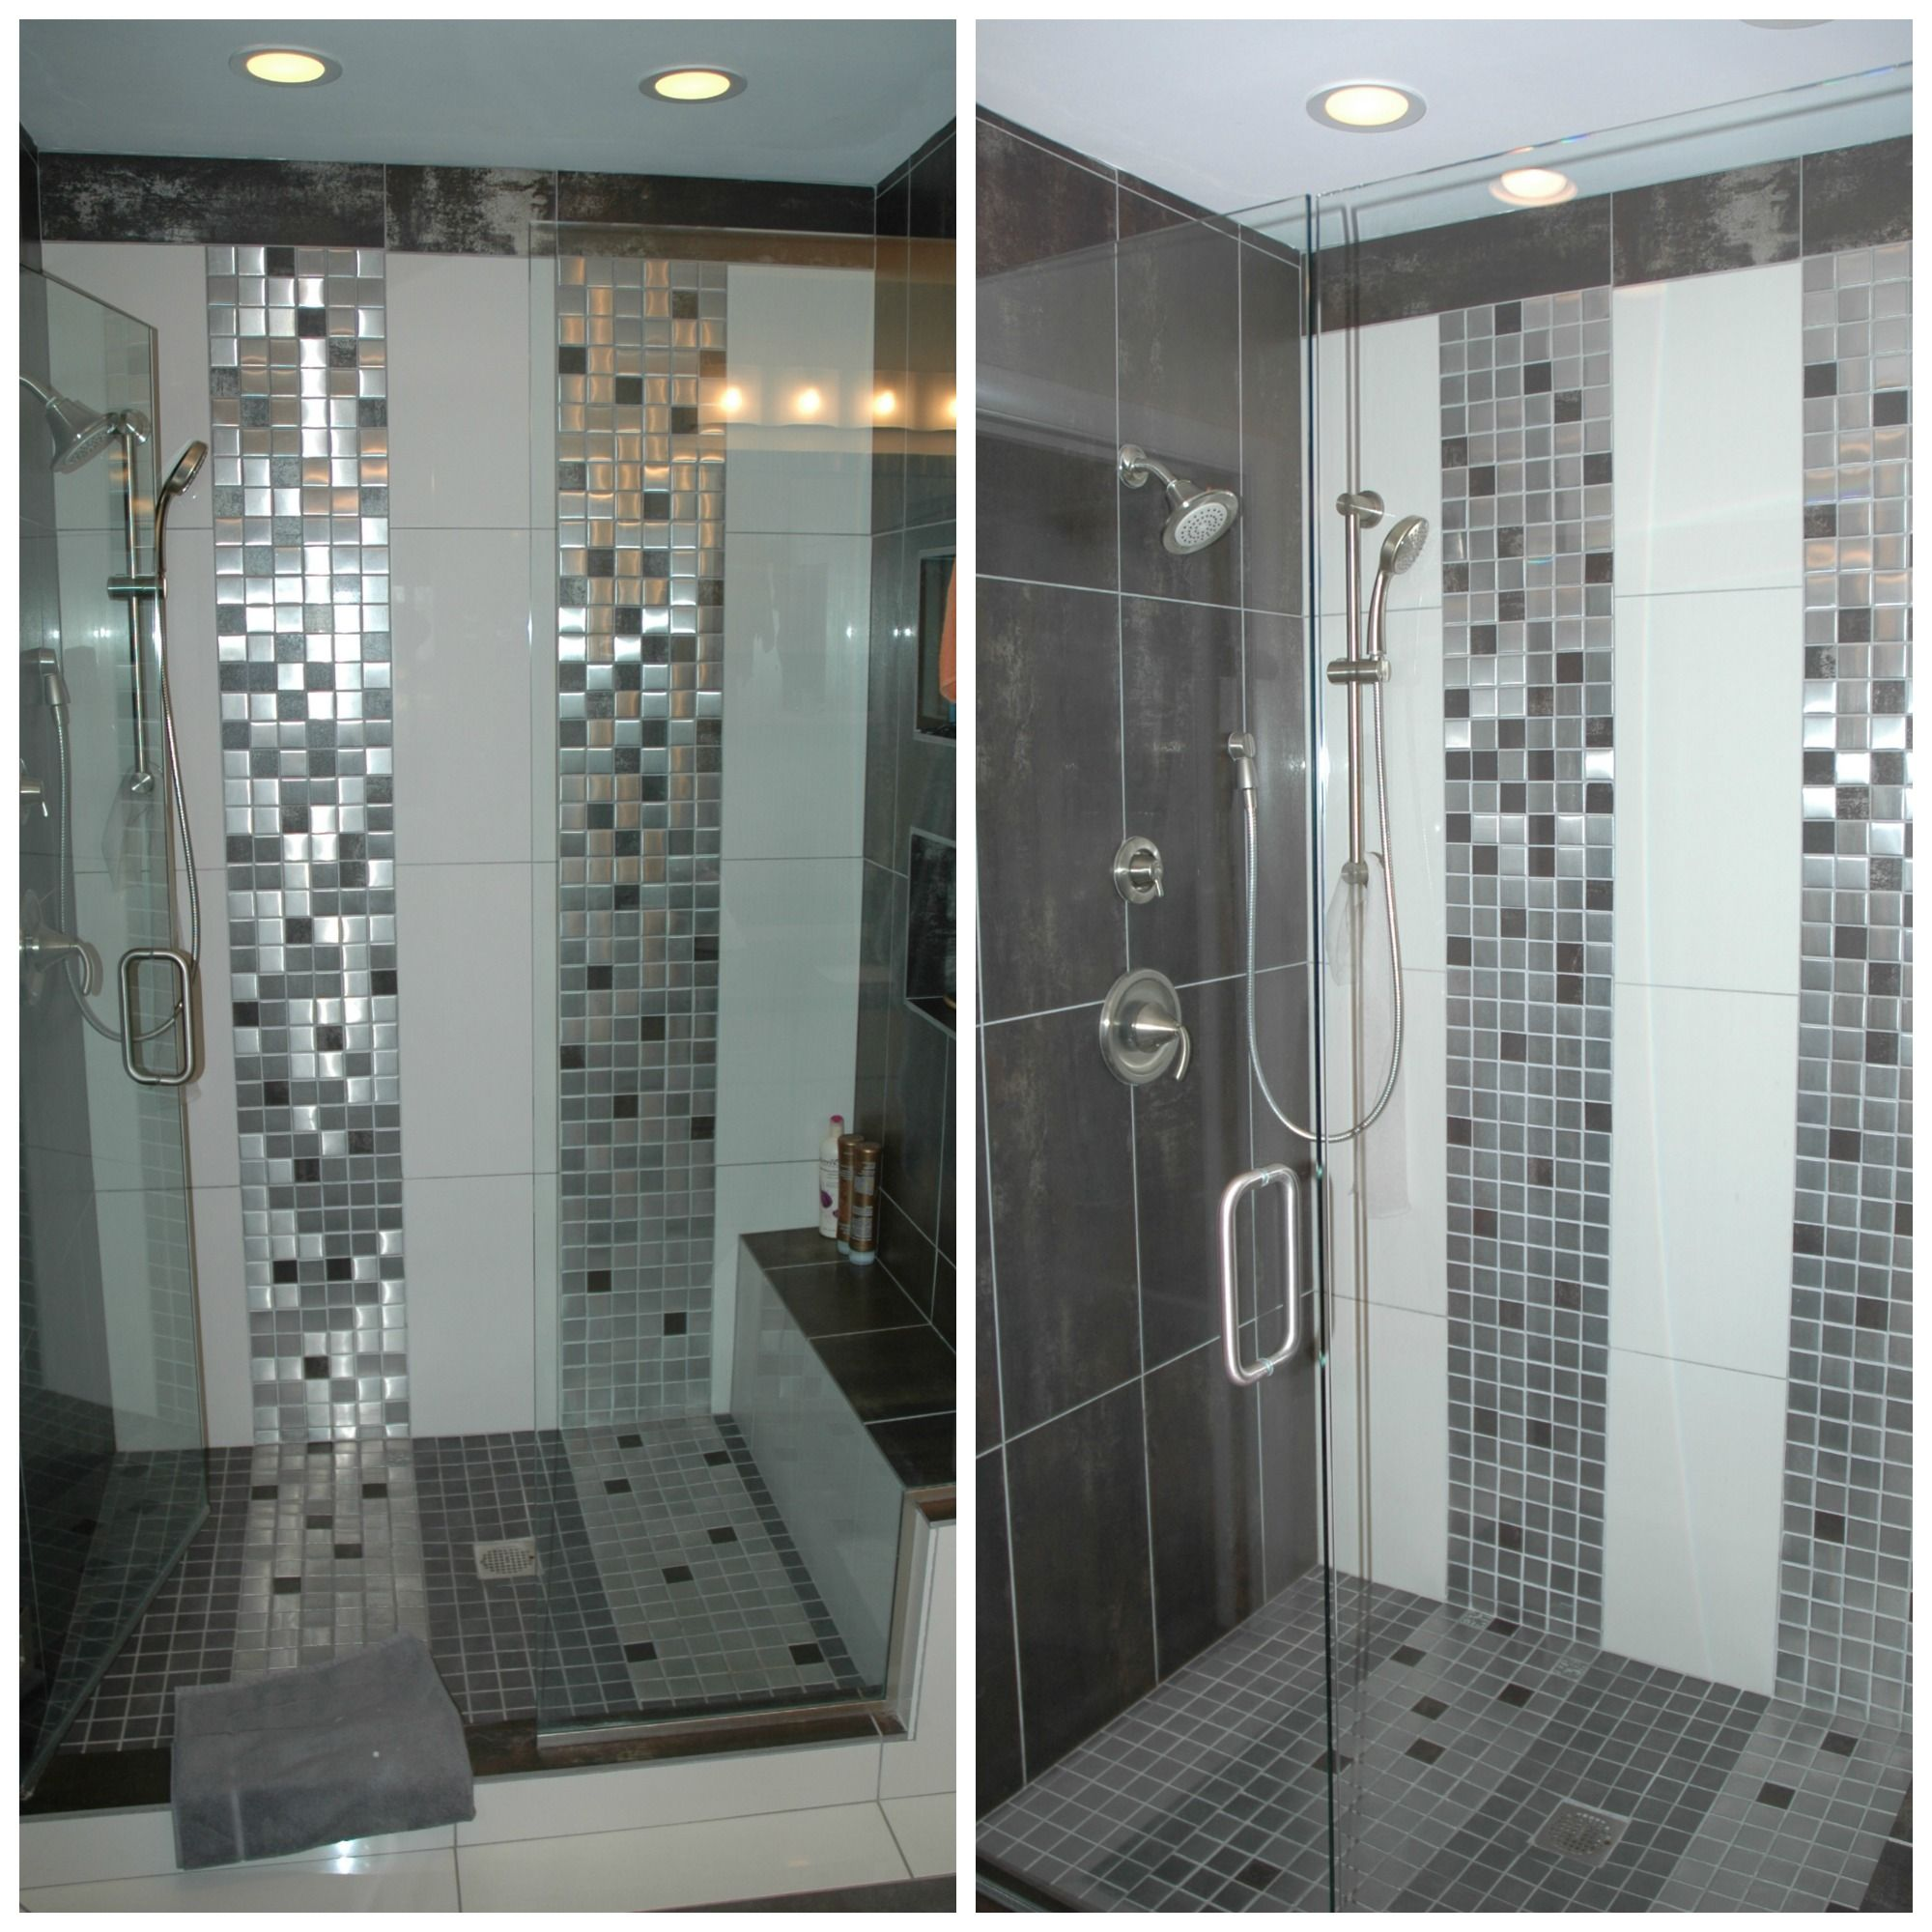 What Makes This Space Special The Vertical Mosaic Accent Tile And Built In Ledge Bench For